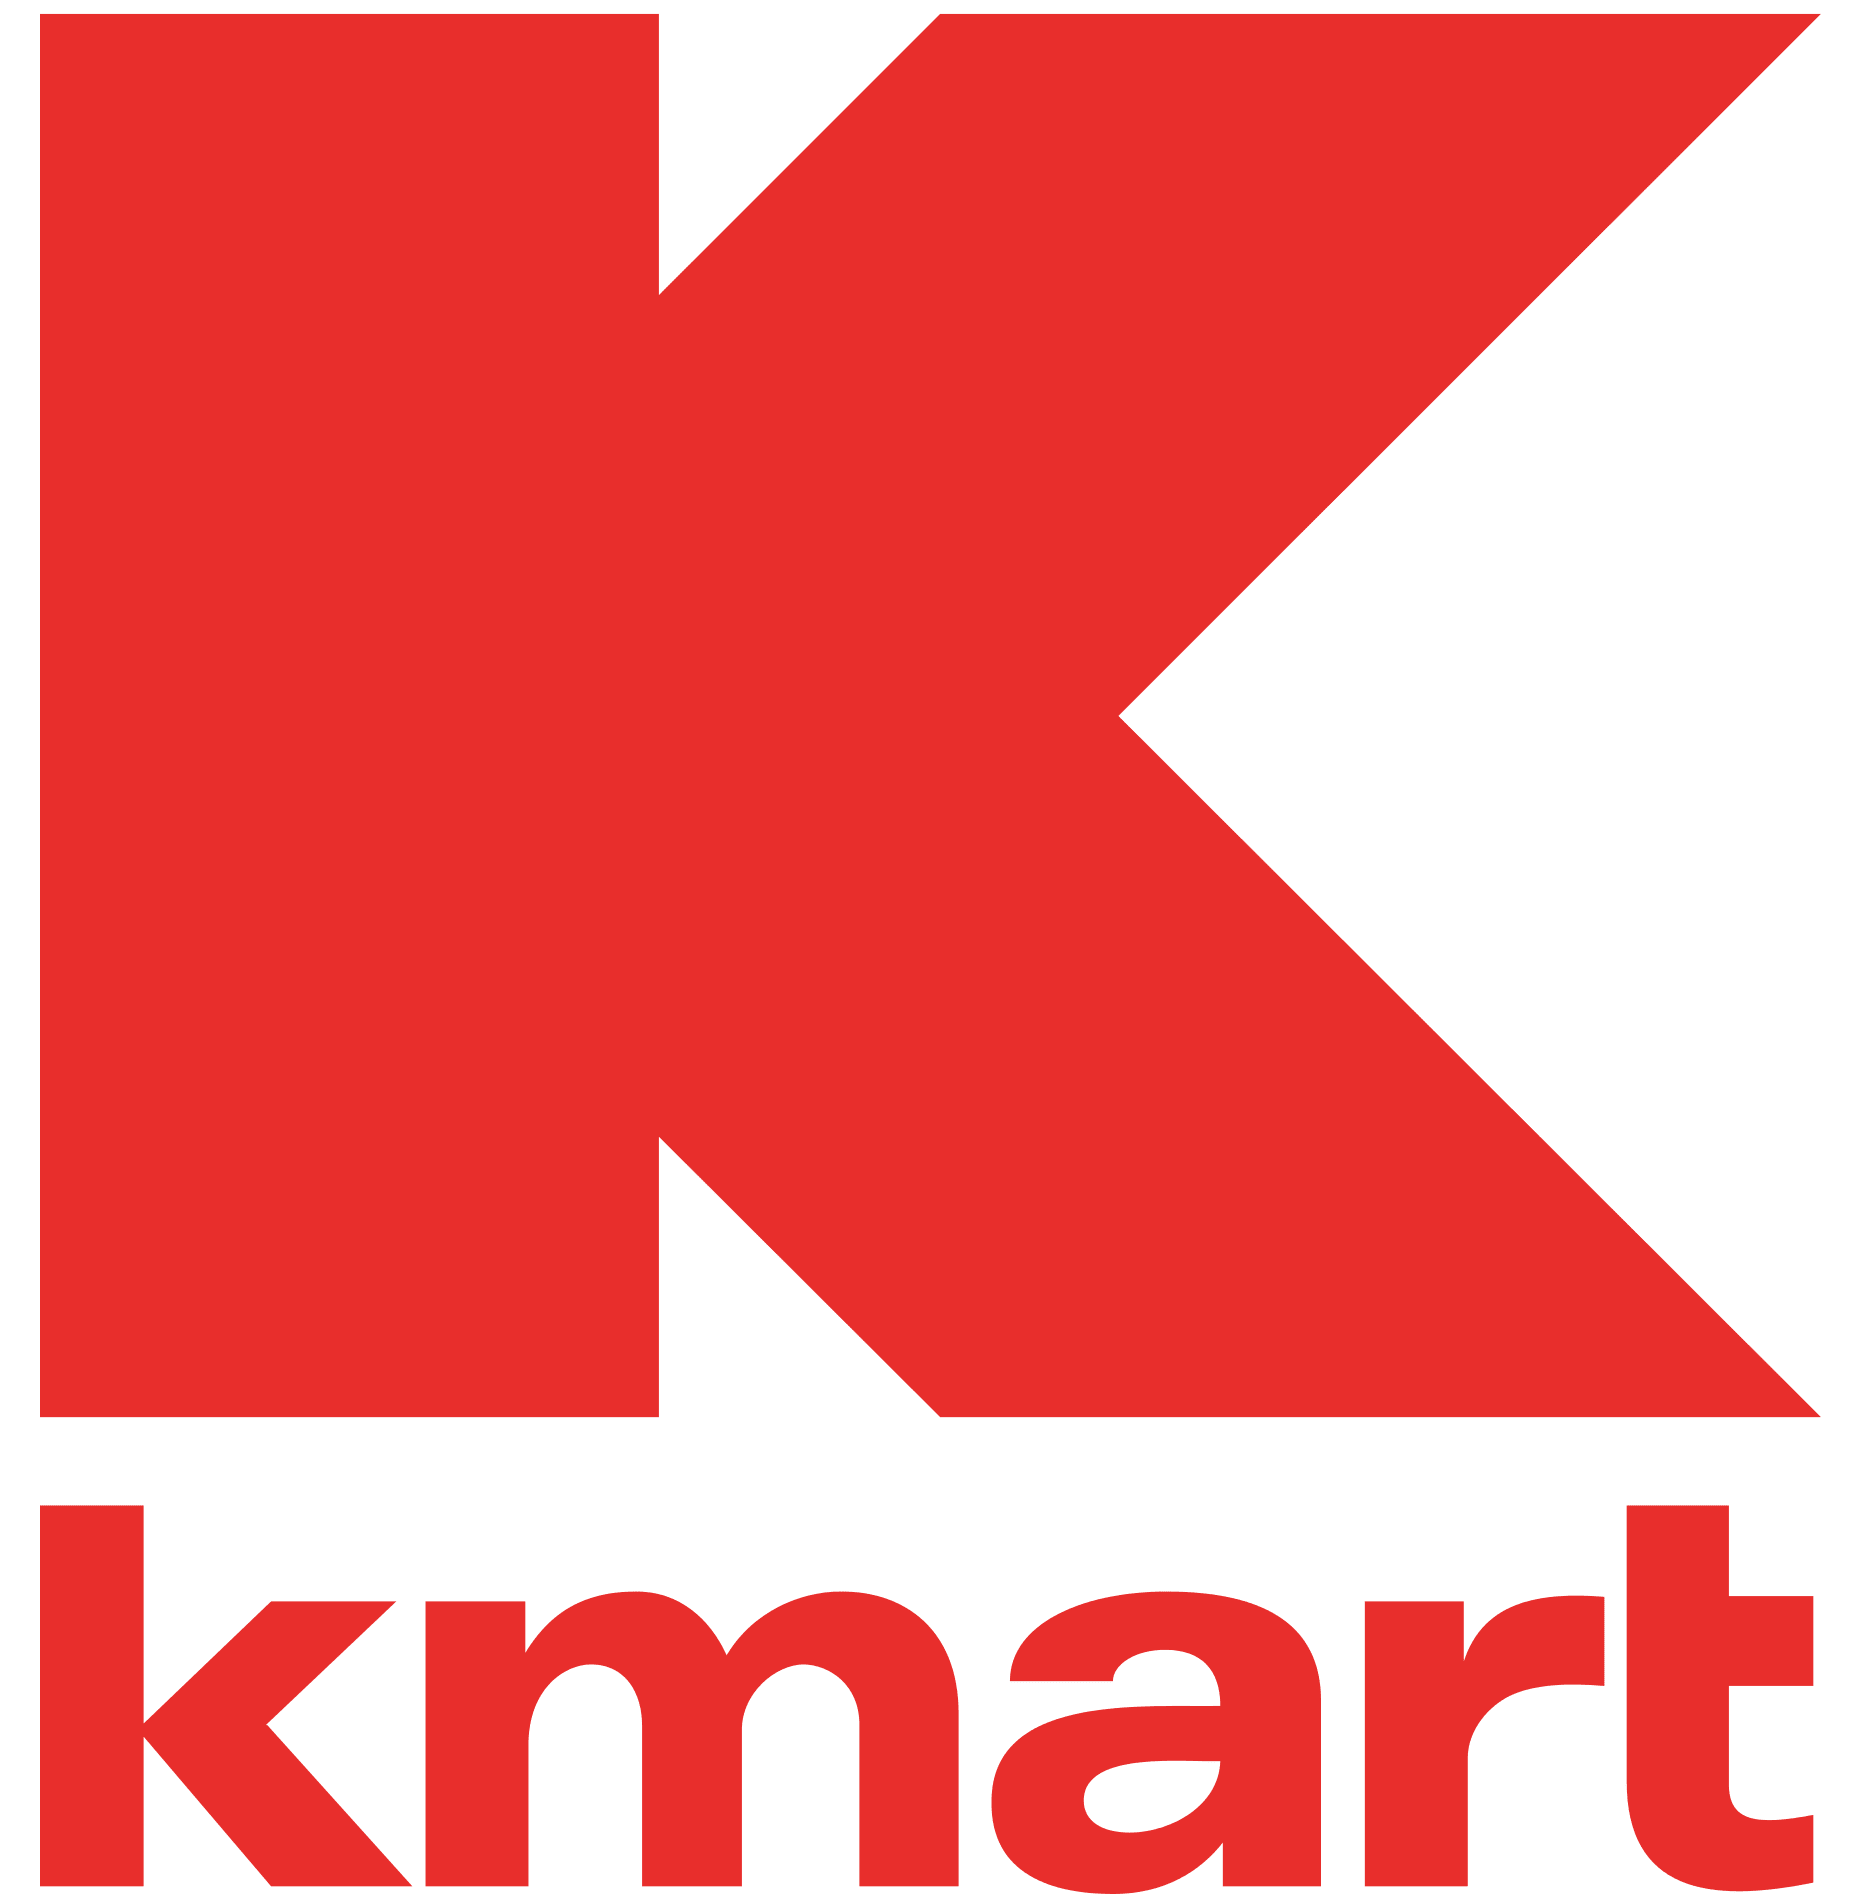 Kmart Summer Blowout Sale: 10% to 50% off sitewide + free shipping w/ $49